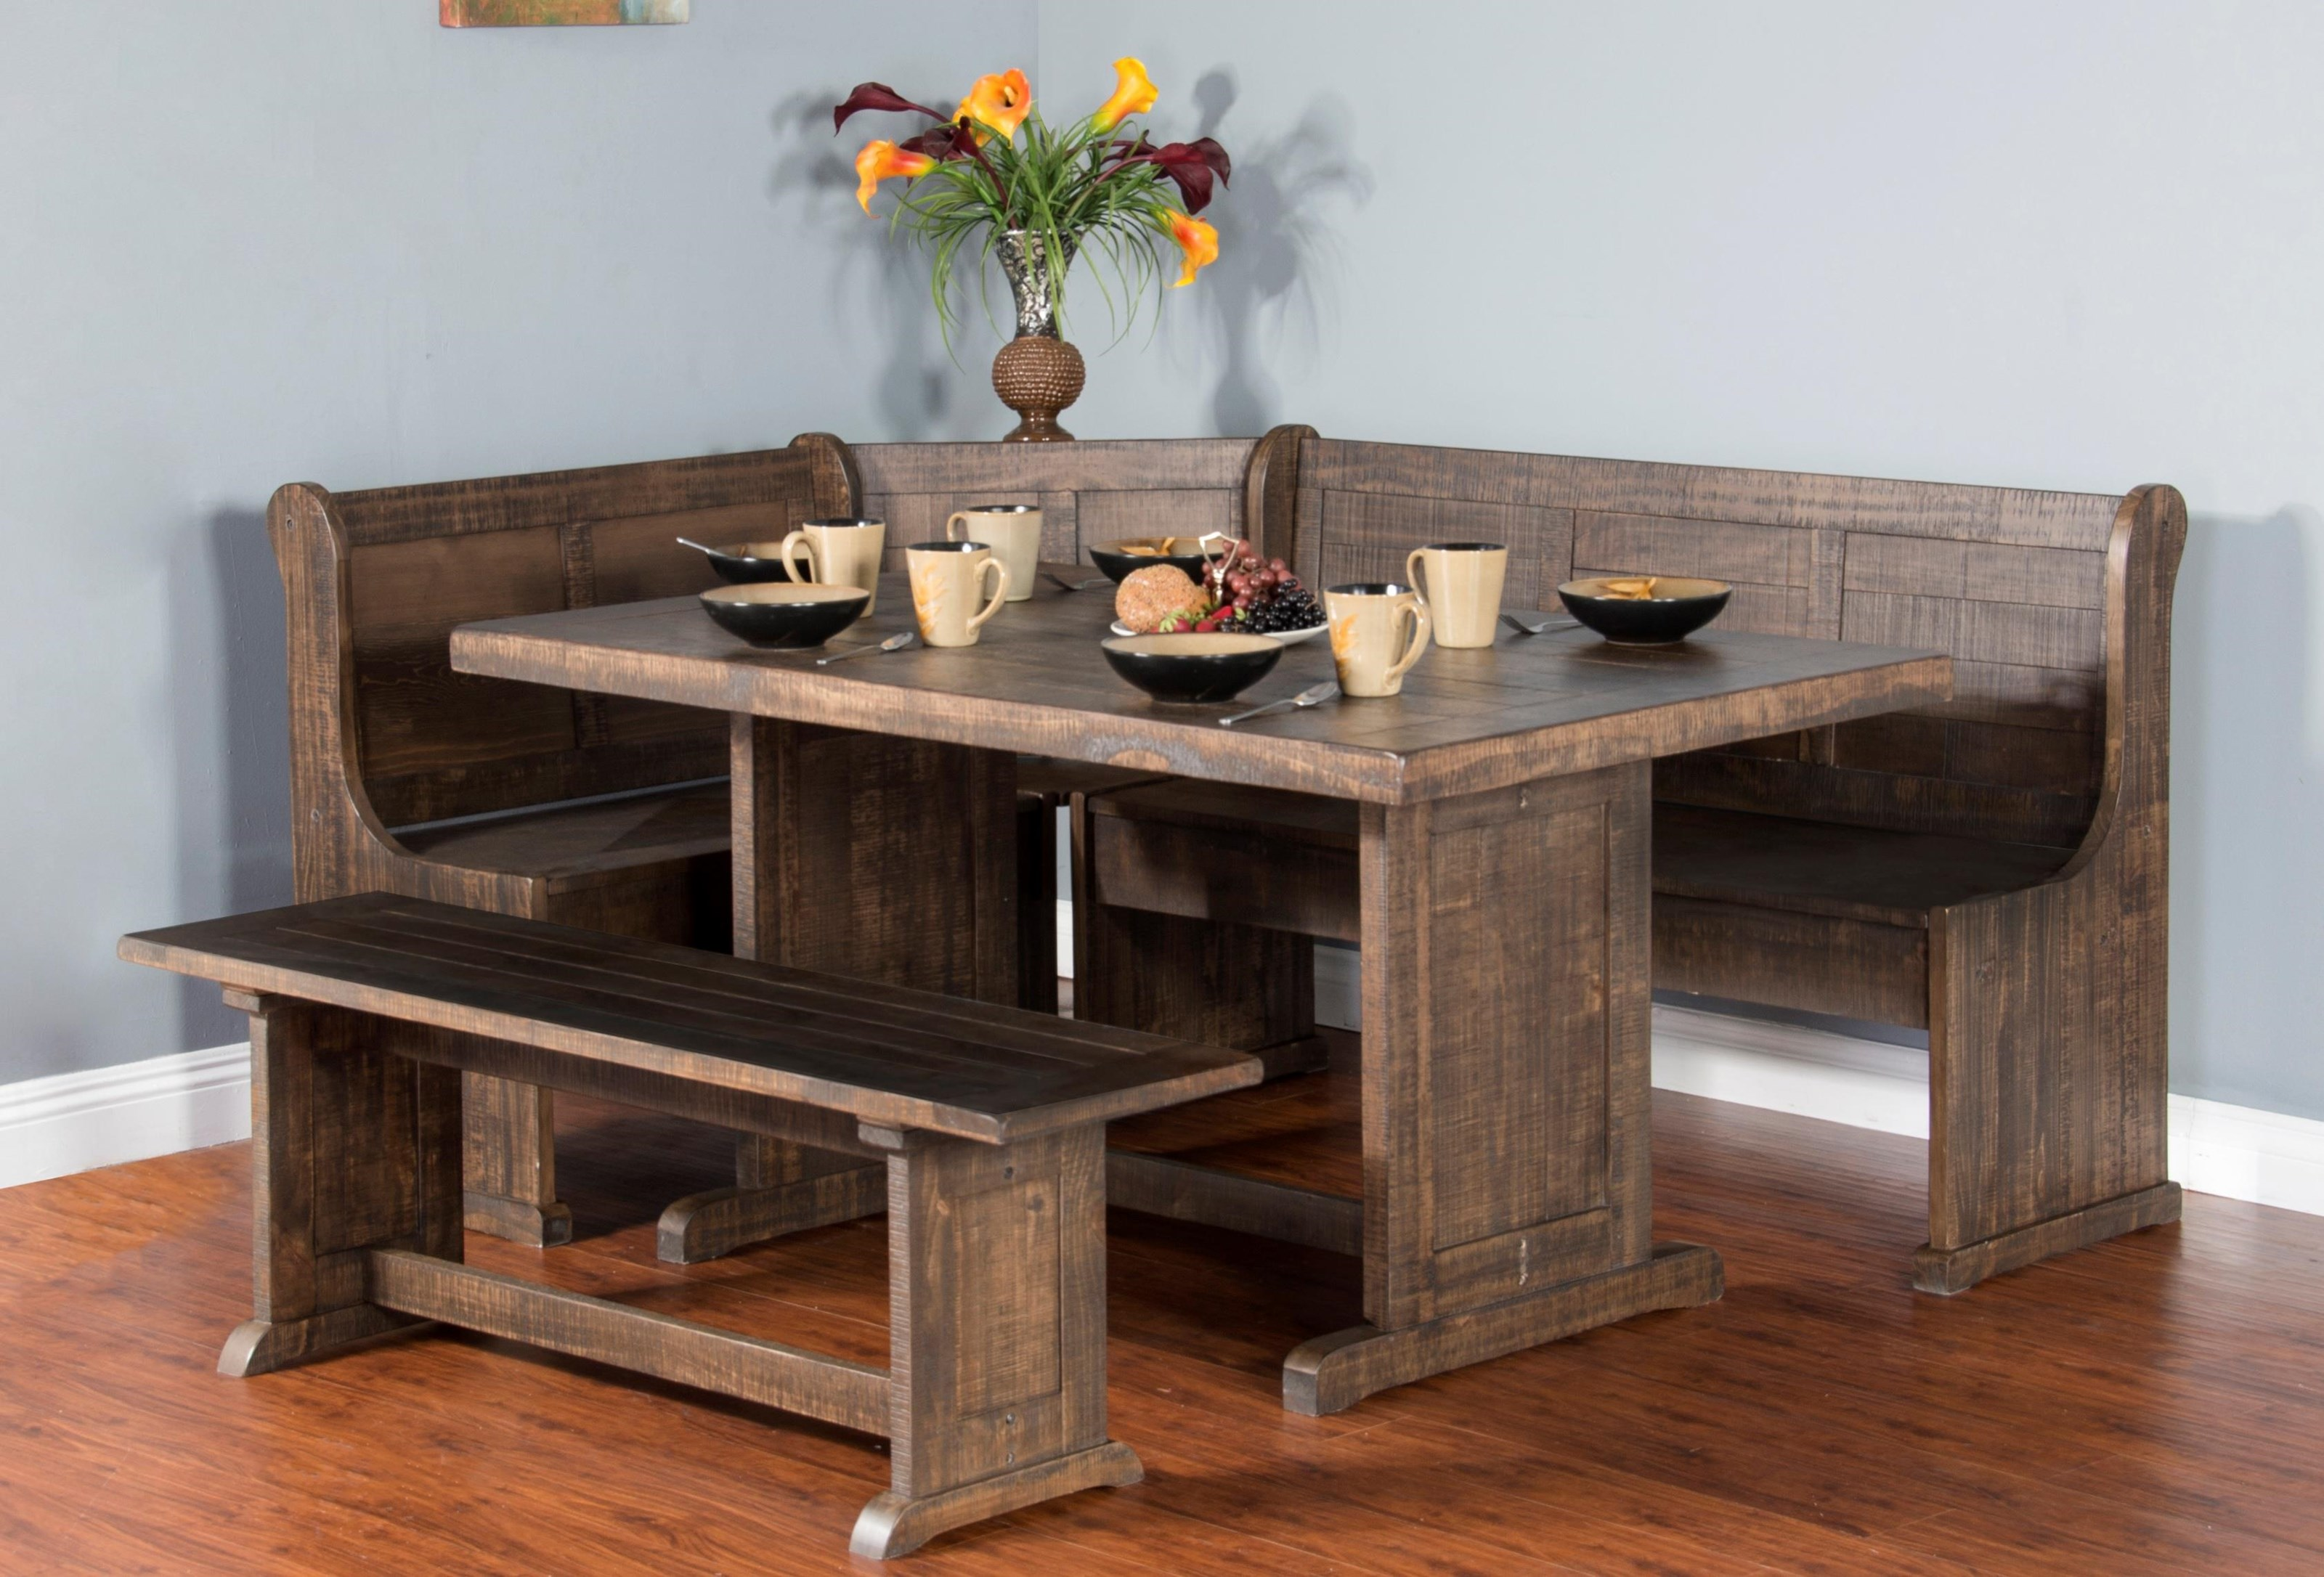 Cottage Place Cottage Place 4-Piece Breakfast Nook by Sunny Designs at Morris Home